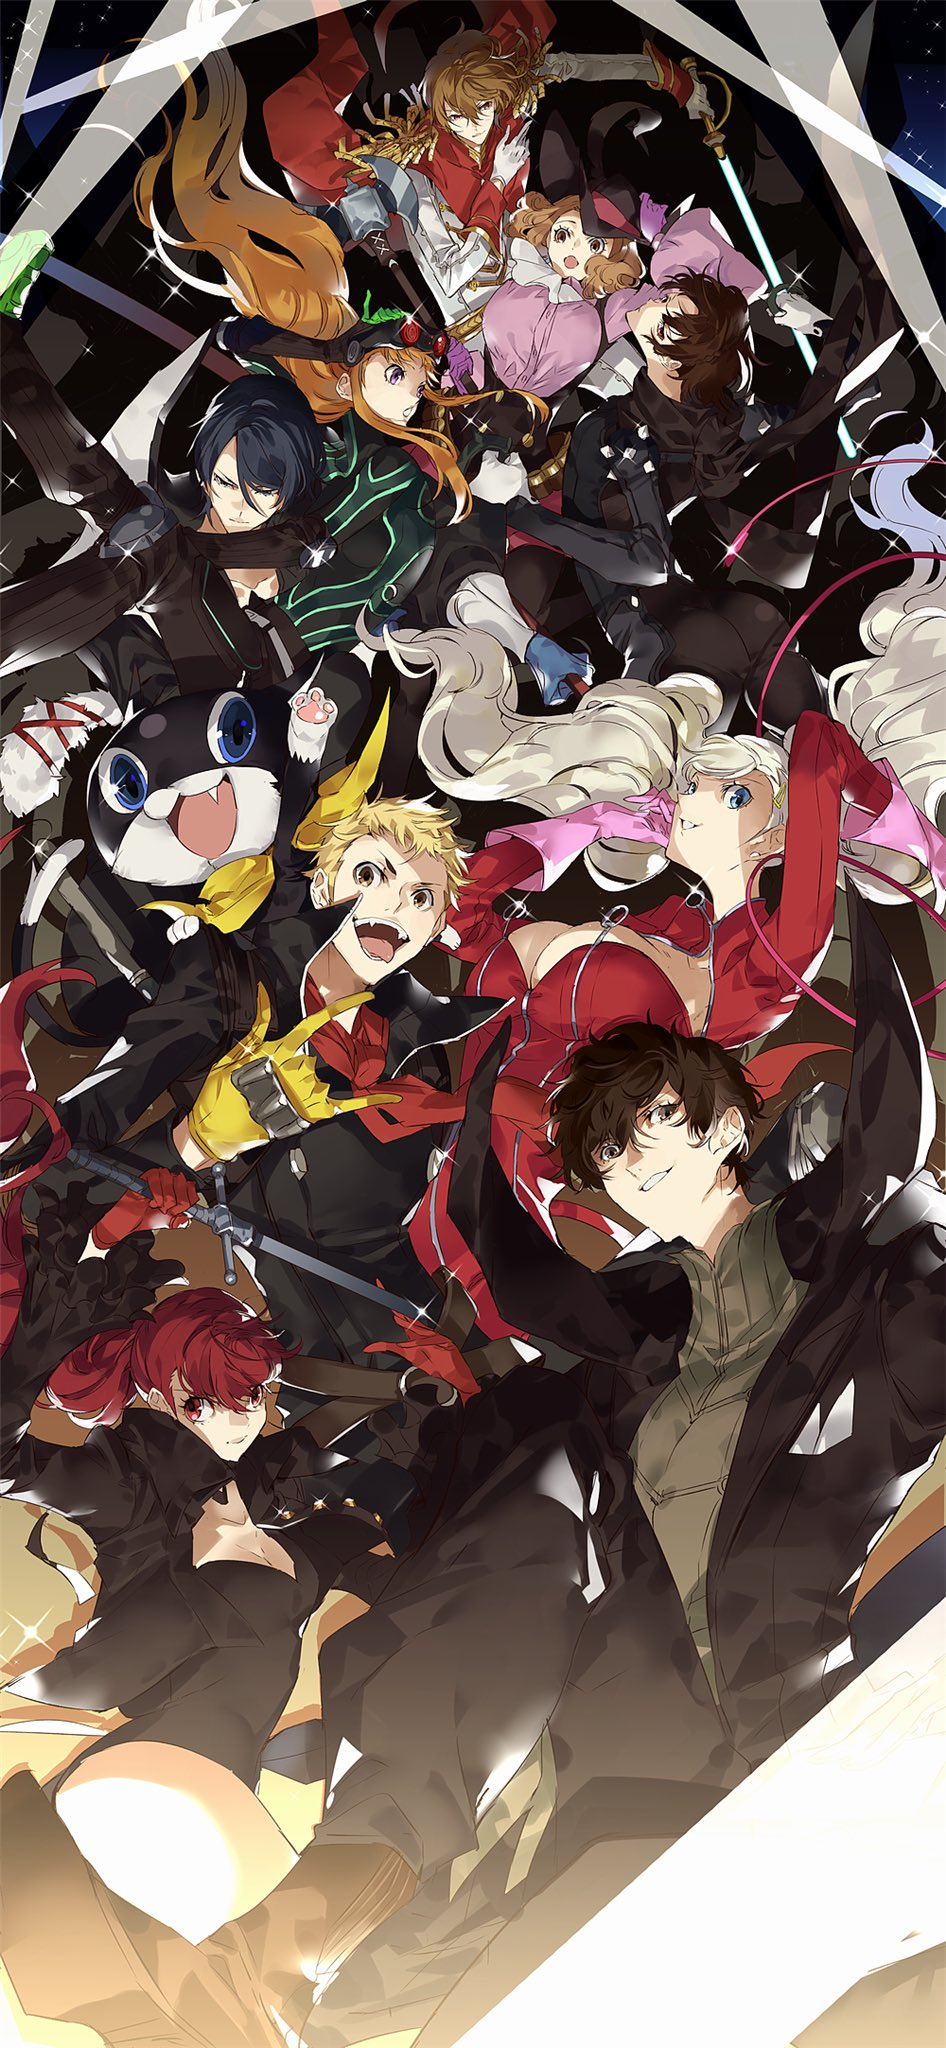 akechi_gorou amamiya_ren animal ayyataka biker_clothes black-framed_eyewear black_hair black_jacket black_legwear blonde_hair blue_eyes blue_hair blush bodysuit bow braid breasts brown_hair cape cat cat_mask closed_mouth cravat crown_braid domino_mask earrings elbow_gloves fake_tail fox_mask glasses gloves hair_between_eyes hair_ornament hat_feather headphones highres jacket jewelry kitagawa_yuusuke leotard long_hair looking_at_viewer male_focus mask mask_removed morgana_(persona_5) multiple_boys multiple_girls niijima_makoto okumura_haru orange_hair pants persona persona_5 persona_5_the_royal pink_gloves plaid plaid_pants ponytail purple_gloves red_bodysuit red_eyes red_gloves red_legwear redhead sakamoto_ryuuji sakura_futaba short_hair shoulder_spikes simple_background smile spikes stud_earrings sword tail takamaki_anne thigh-highs twintails weapon whip yoshizawa_kasumi zipper